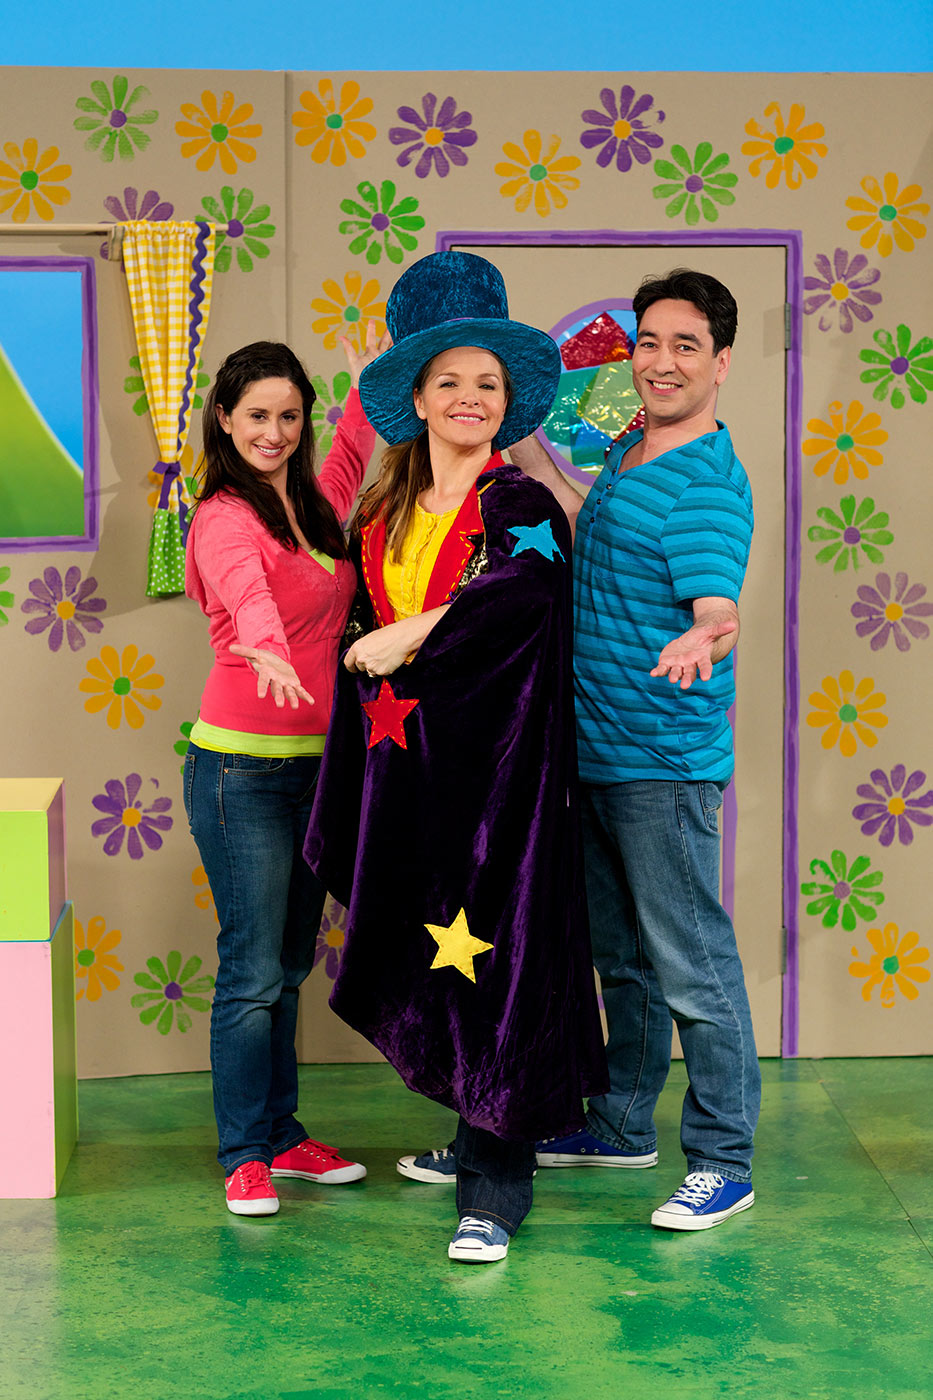 Emma Palmer, Justine Clarke and Alex Papps - click to view larger image